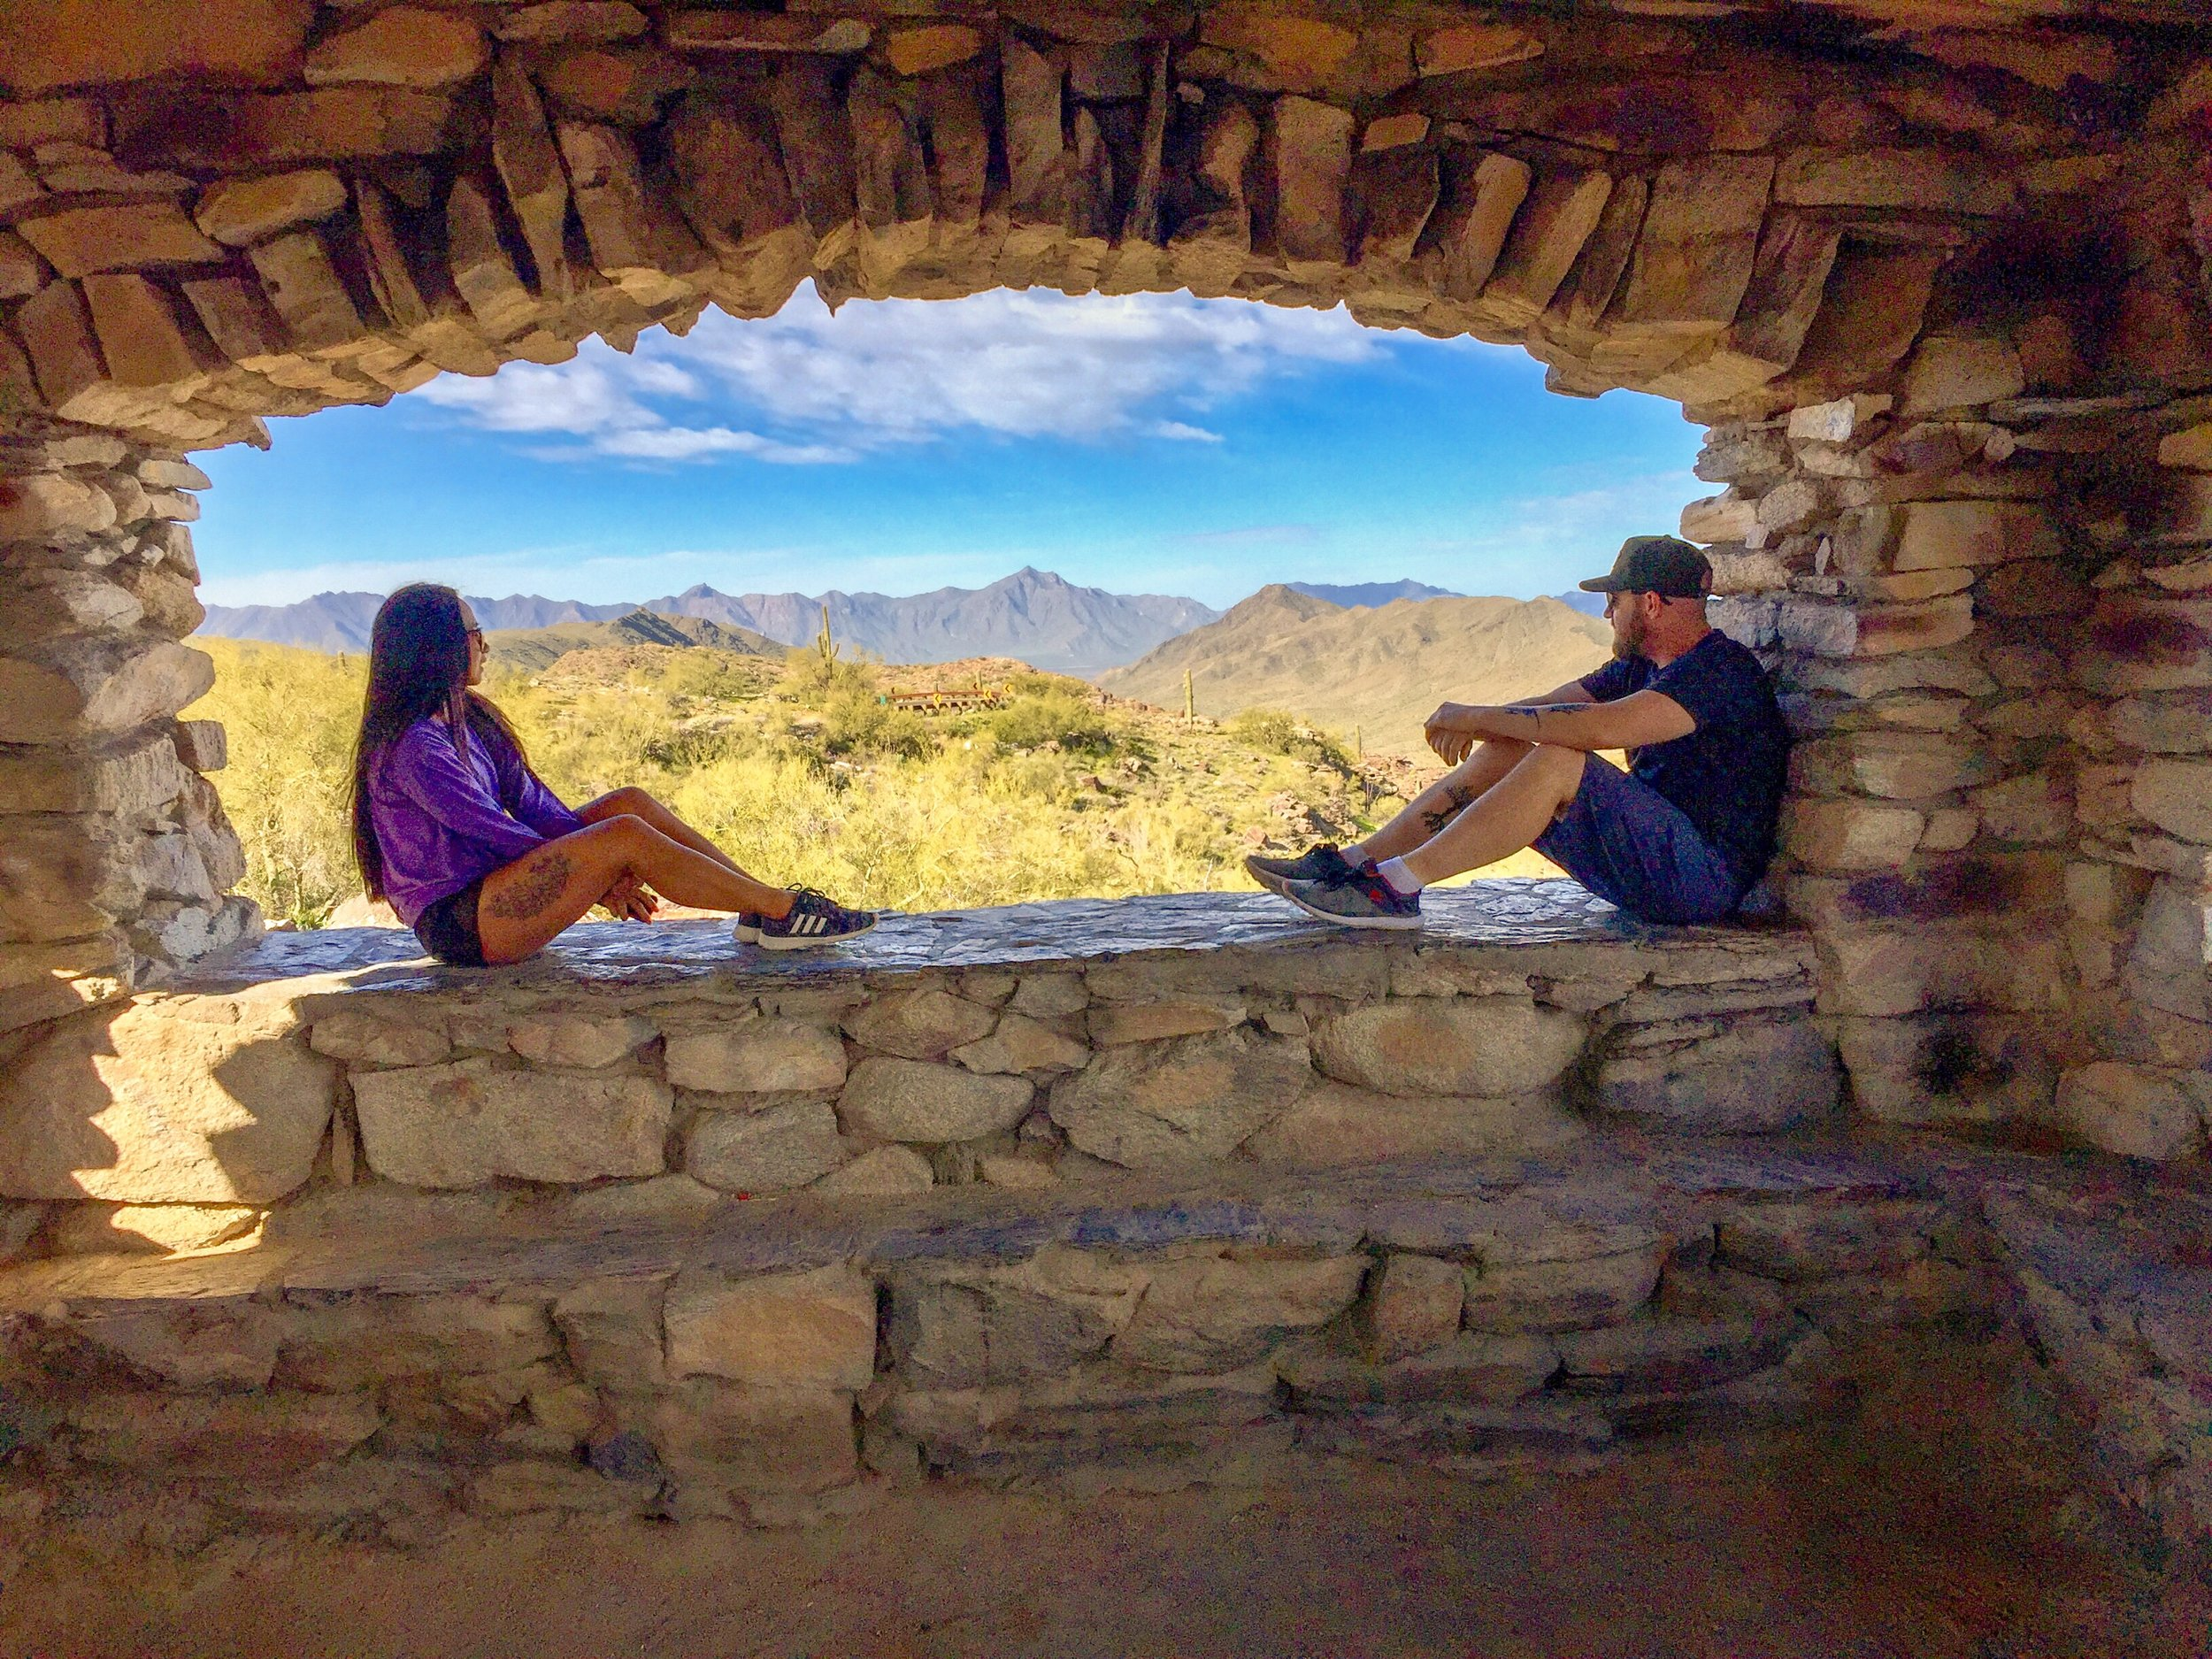 Dobbins Lookout at South Mountain, Phoenix, Arizona